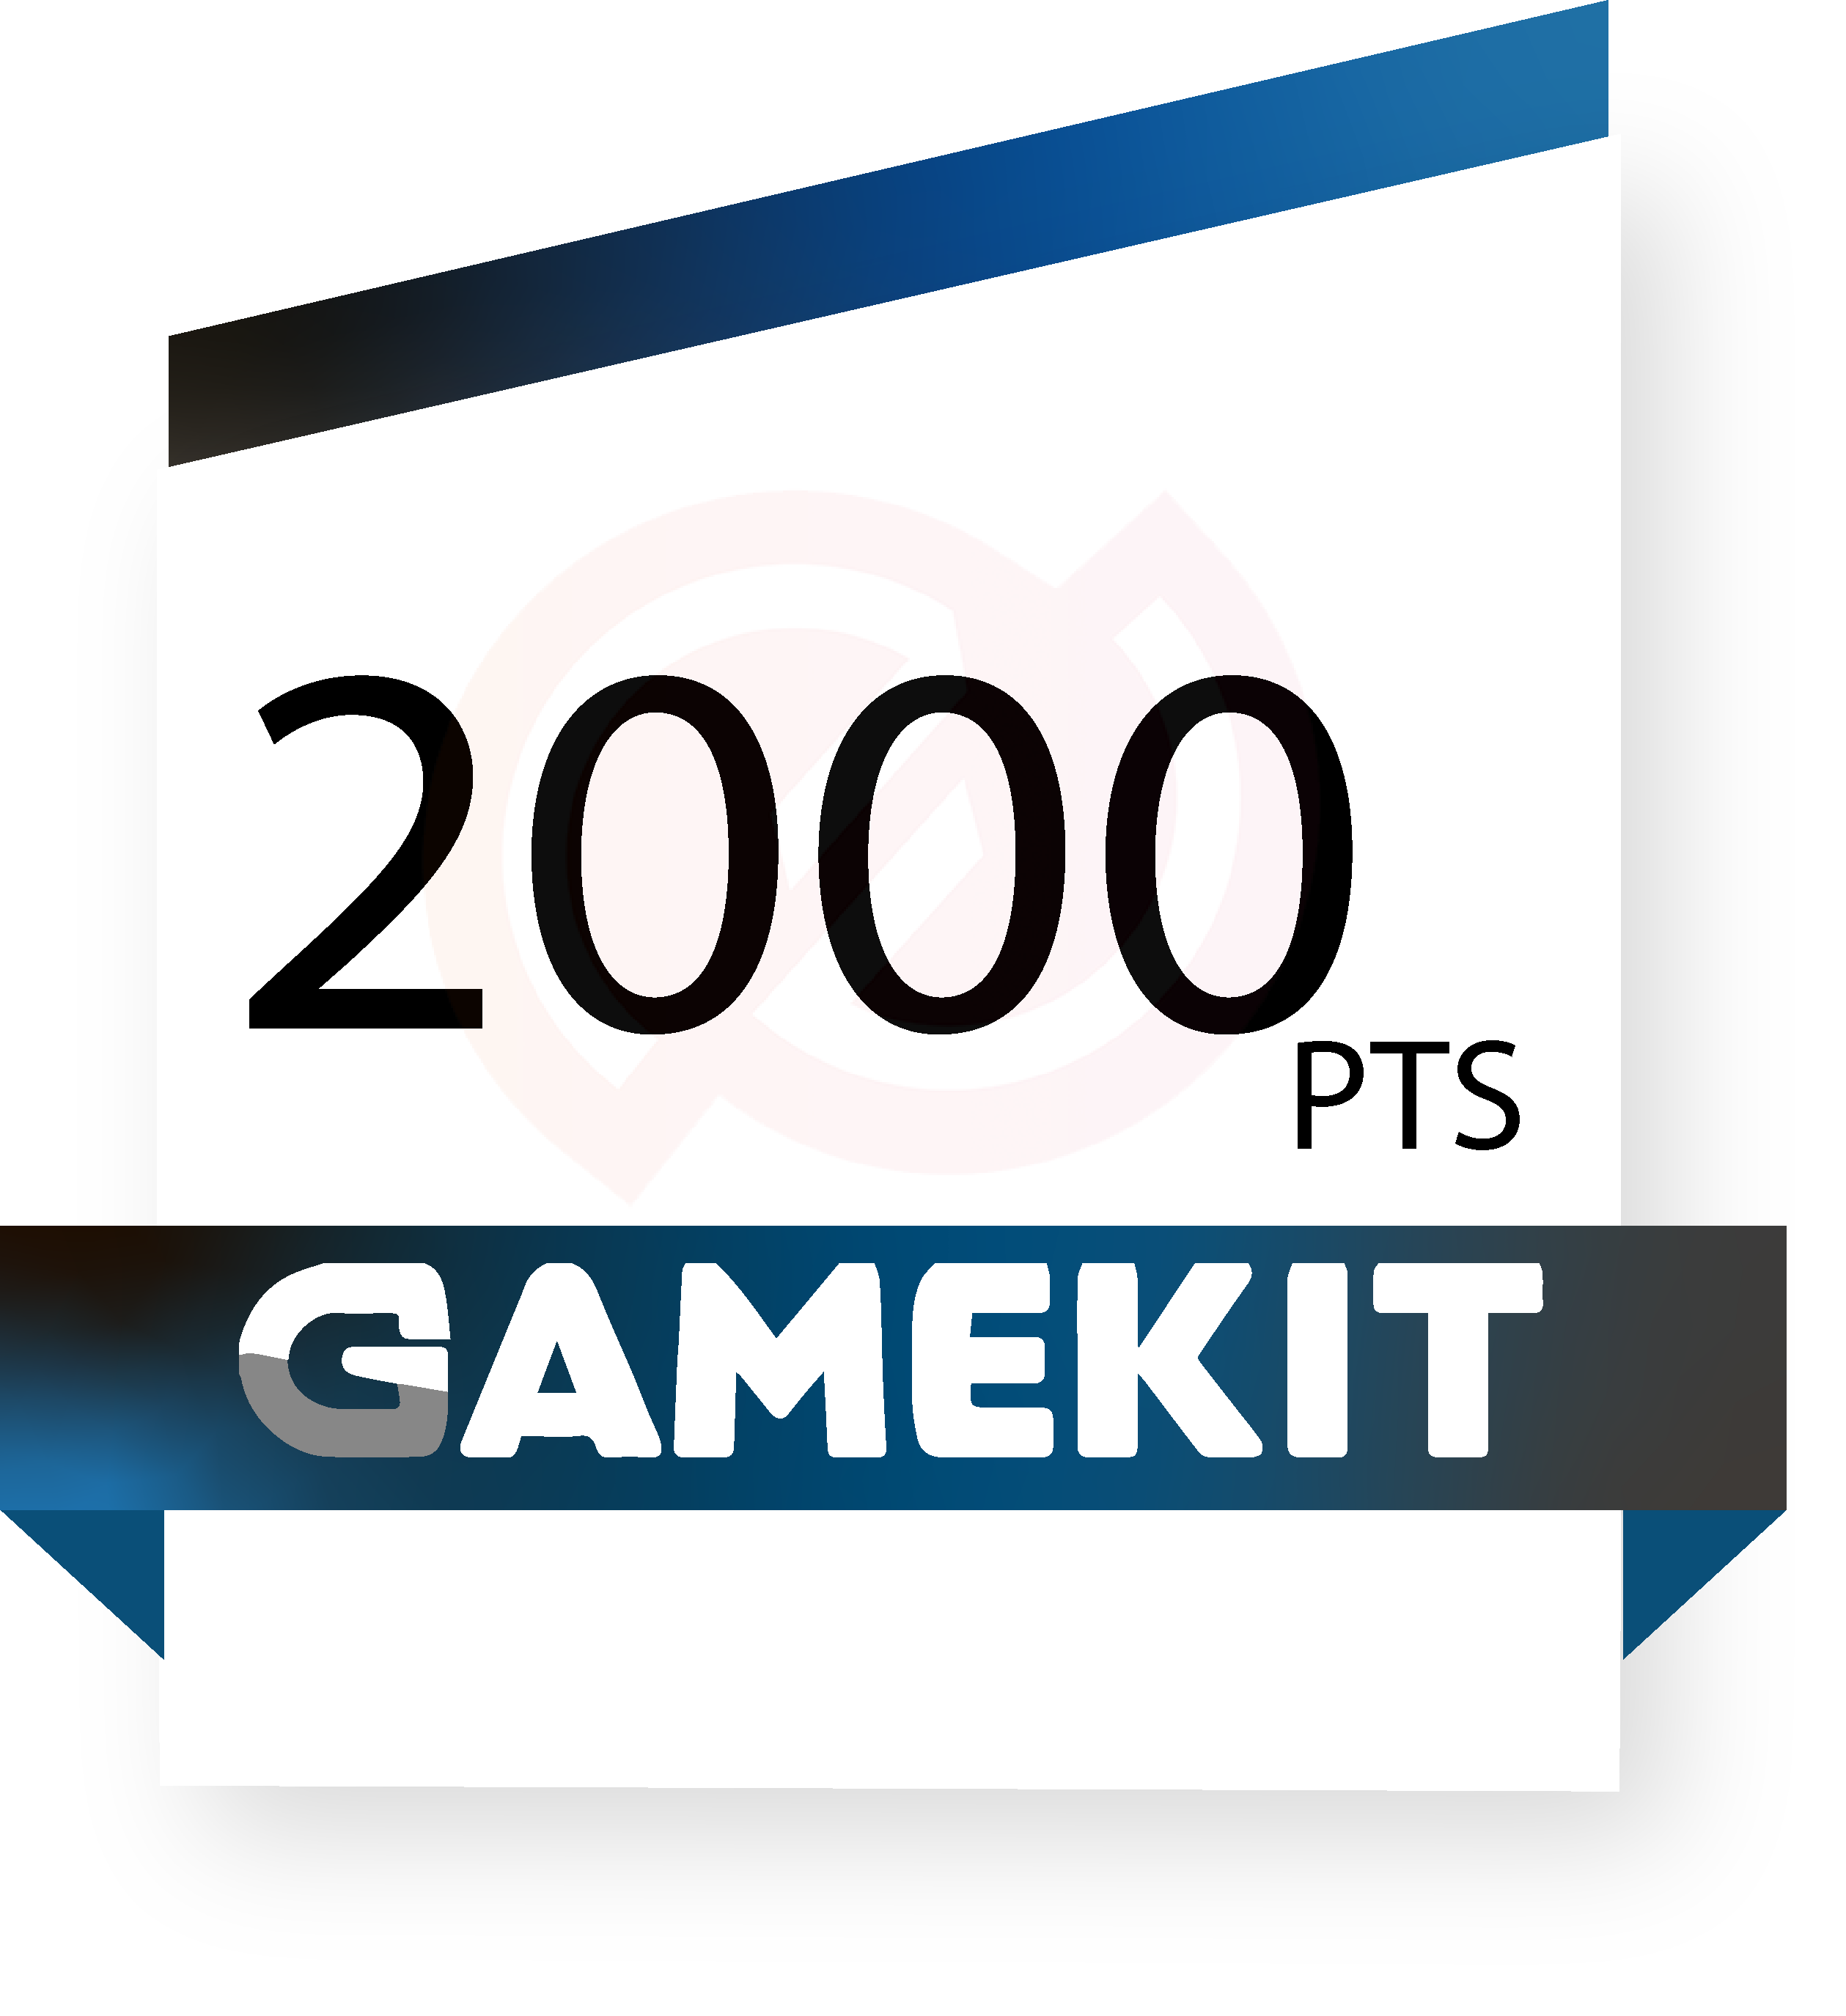 gamekit-2000-points